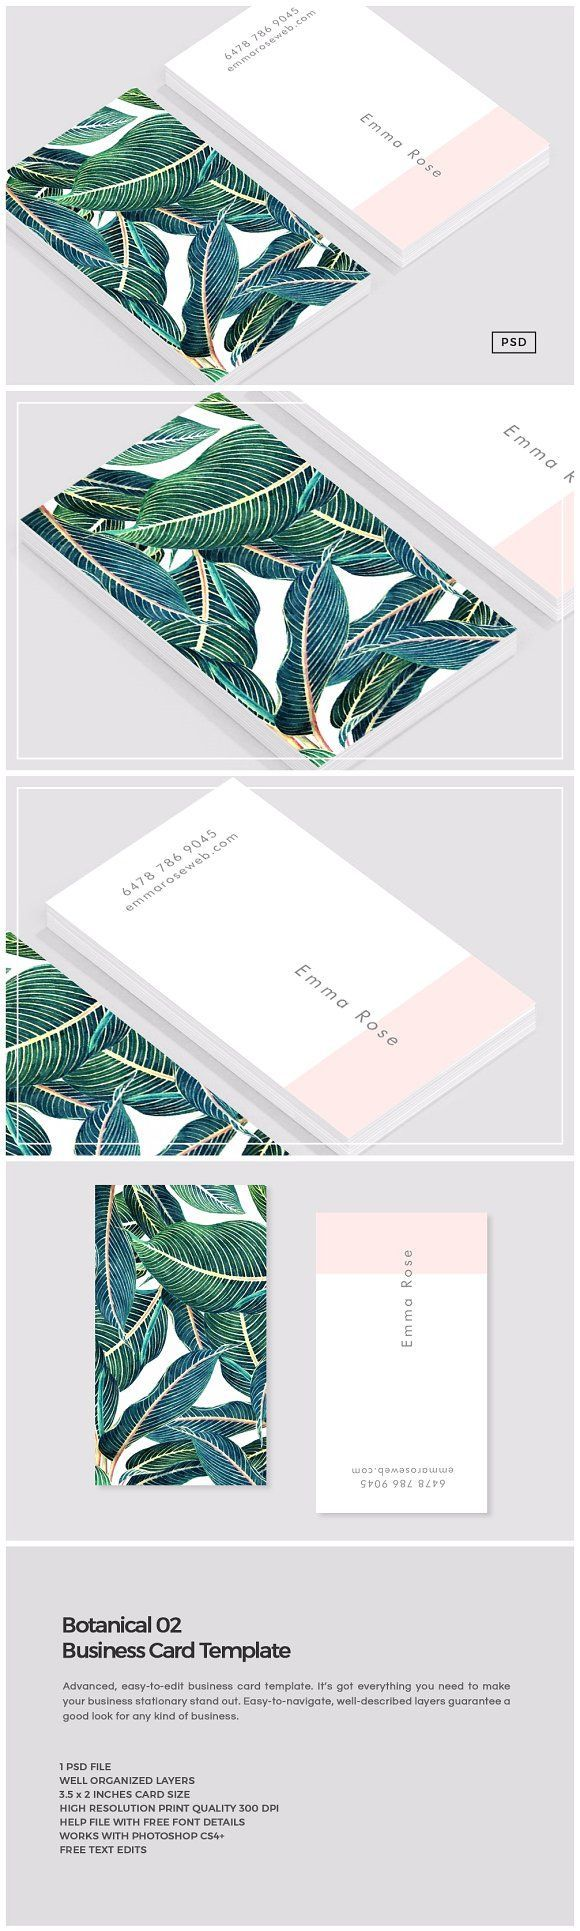 867 best business card designs images on pinterest business cards botanical 02 business card template by the design label on creative market reheart Gallery